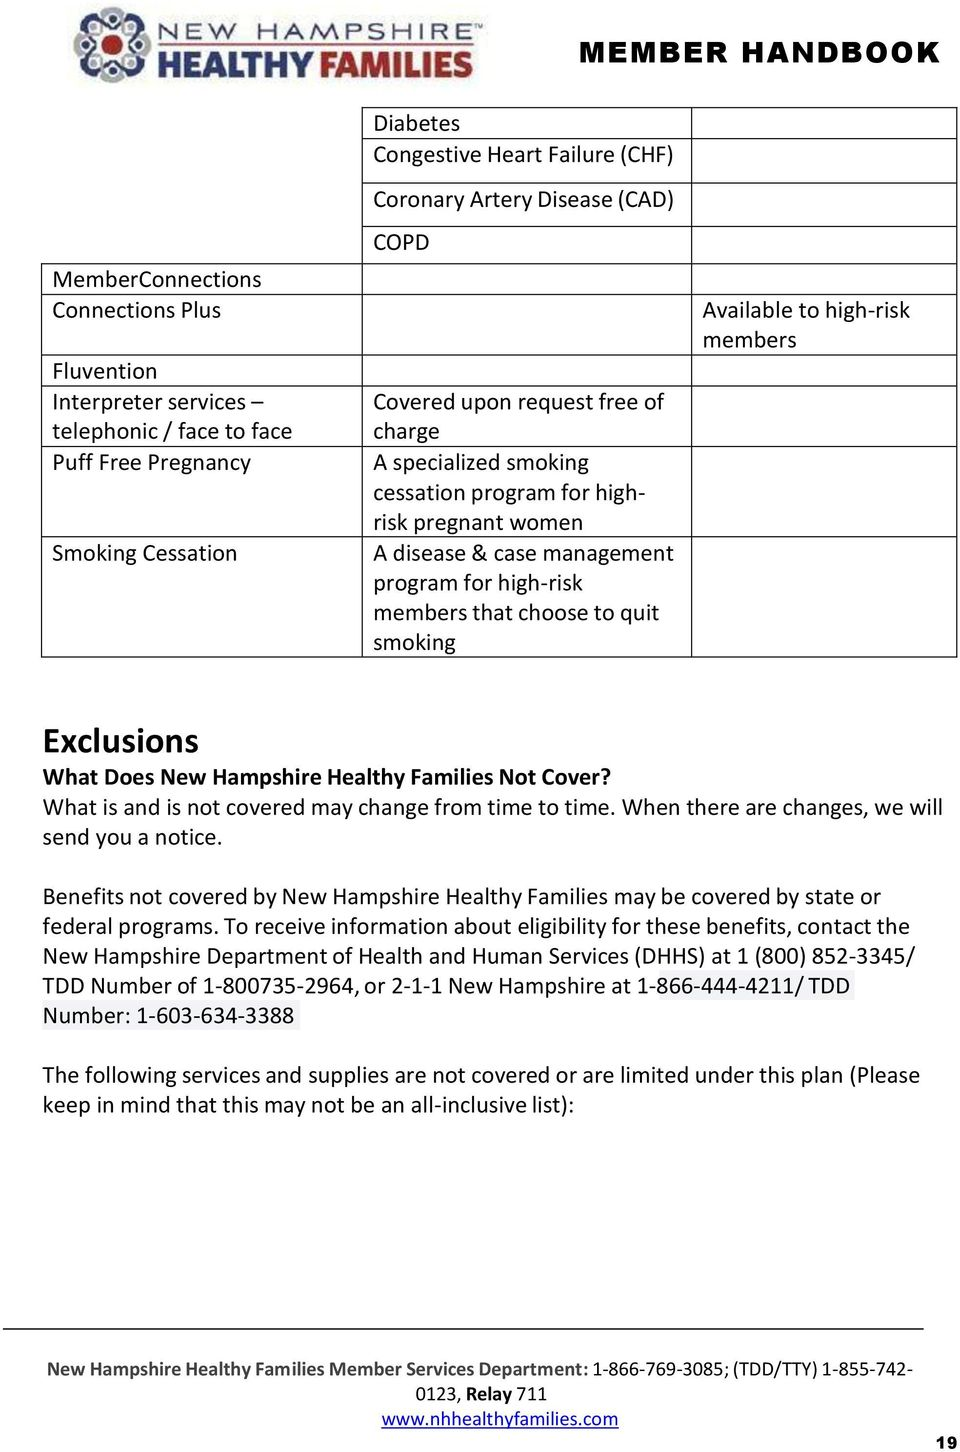 smoking Available to high-risk members Exclusions What Does New Hampshire Healthy Families Not Cover? What is and is not covered may change from time to time.